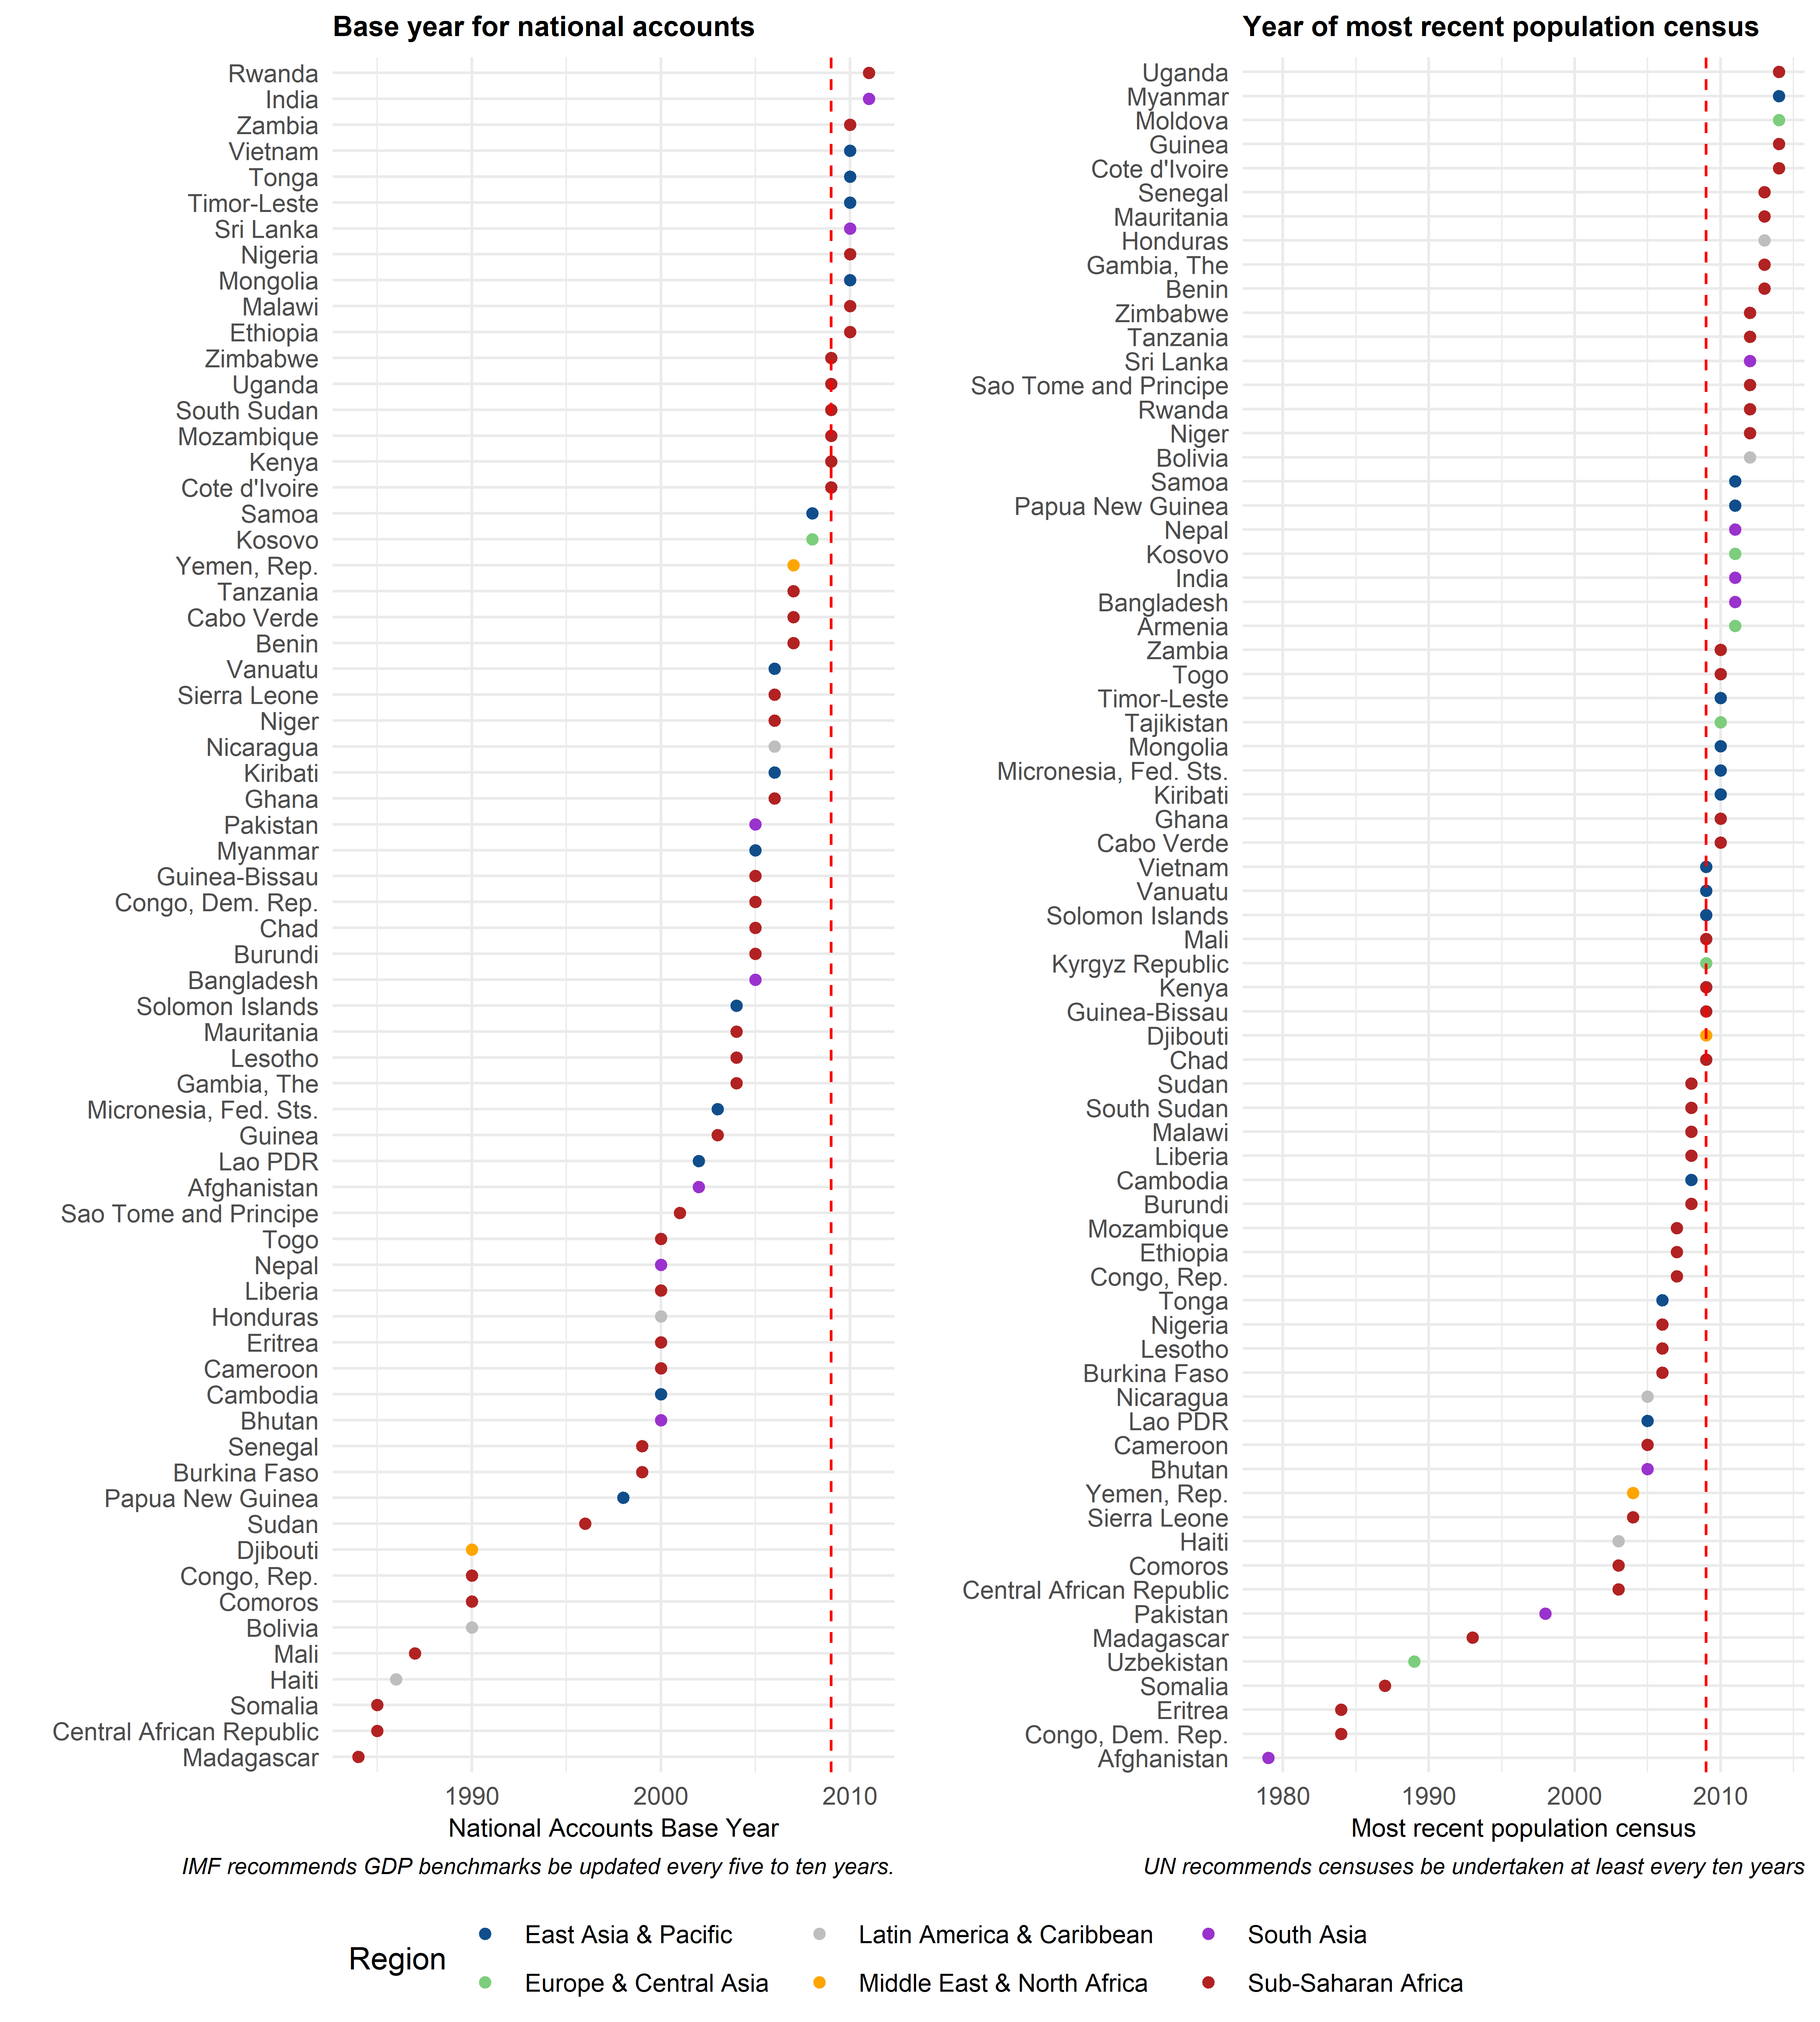 A chart showing national accounts and population census